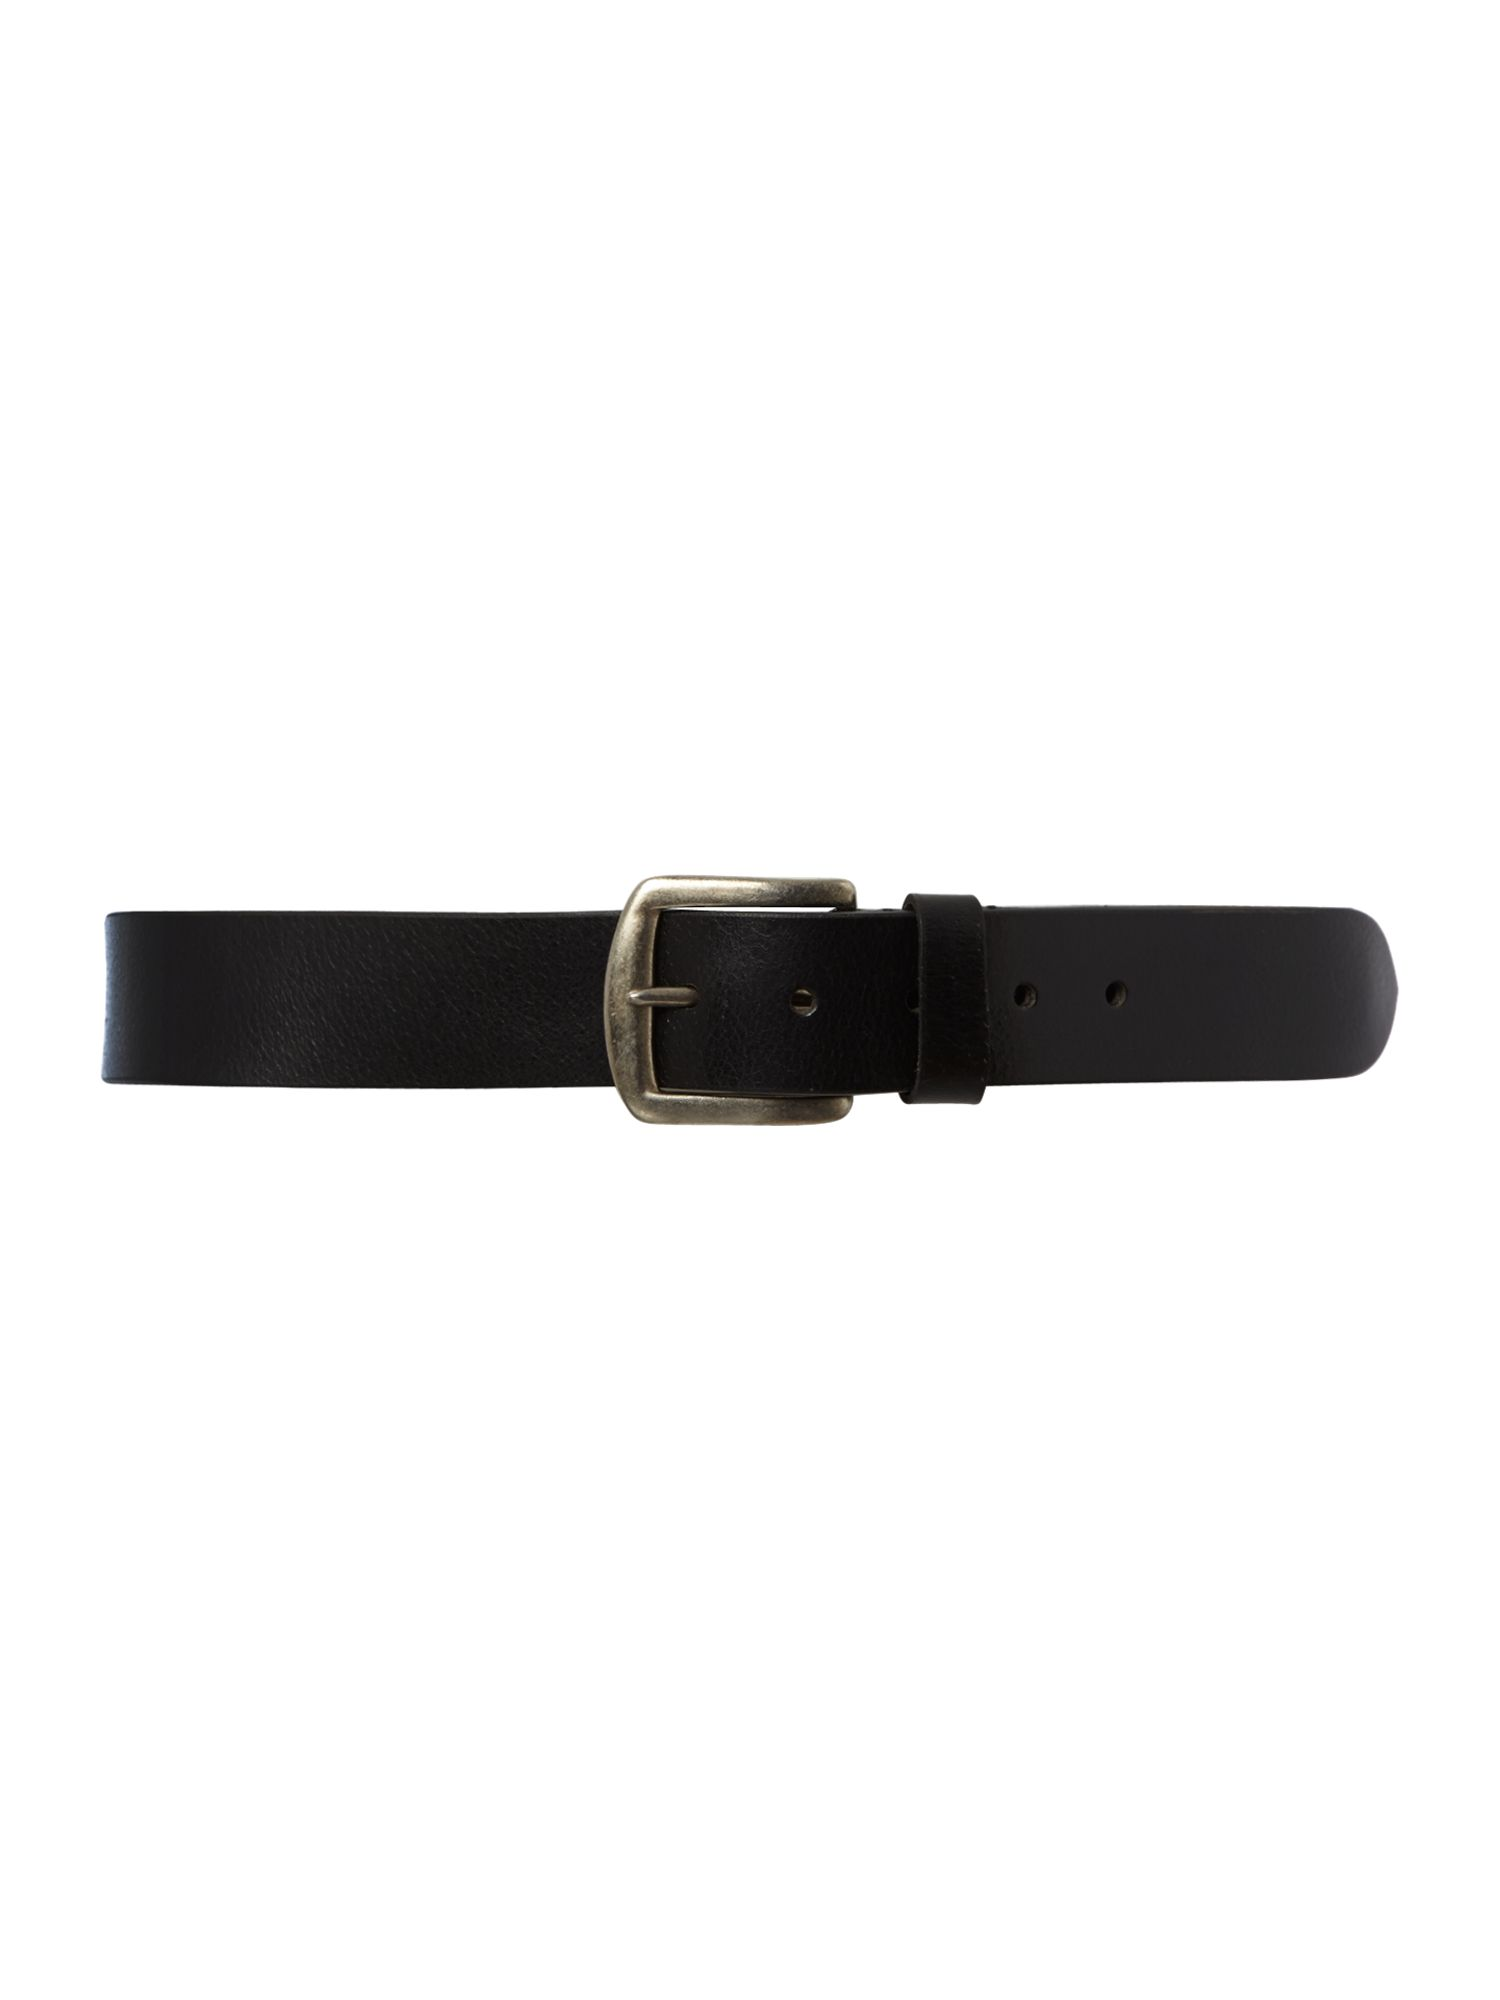 Leather crunch belt